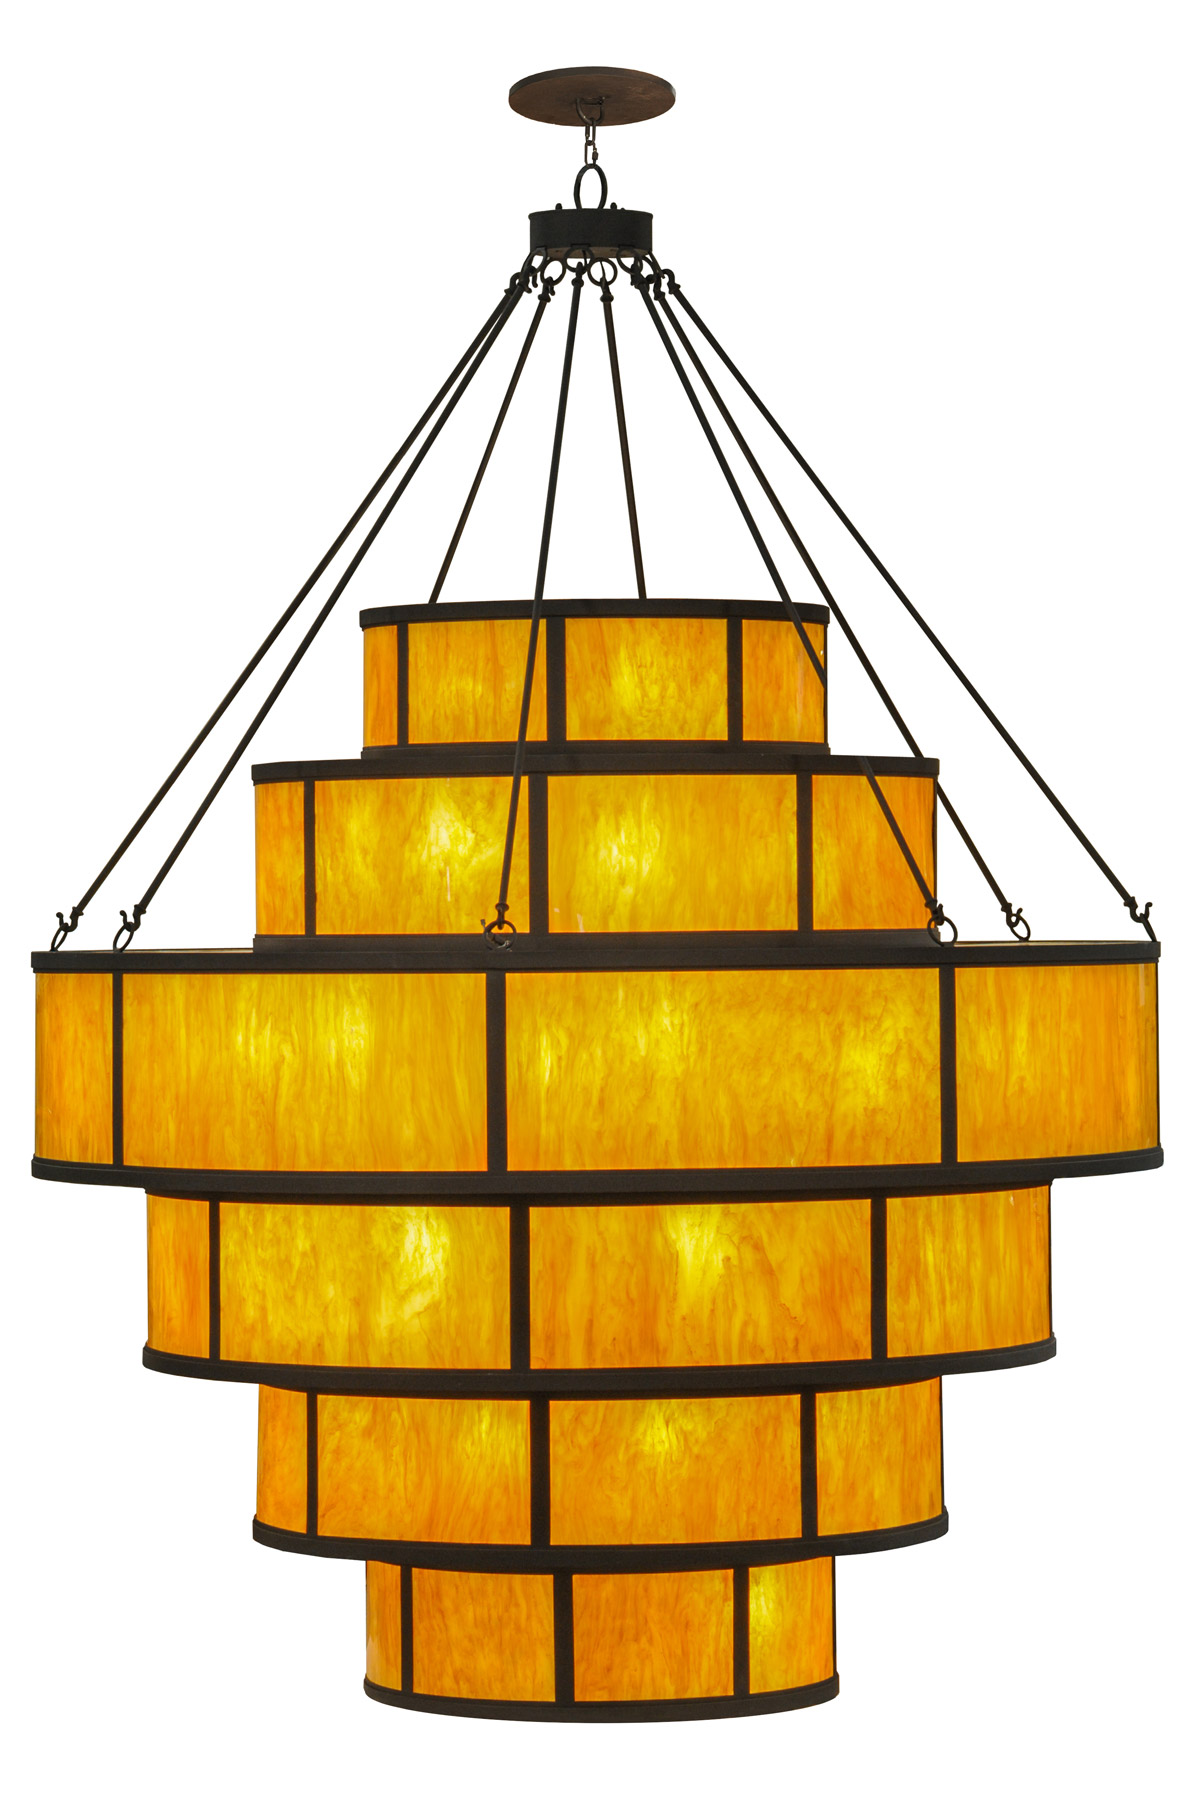 Meyda 149591 Jayne Large Scale Led Pendant